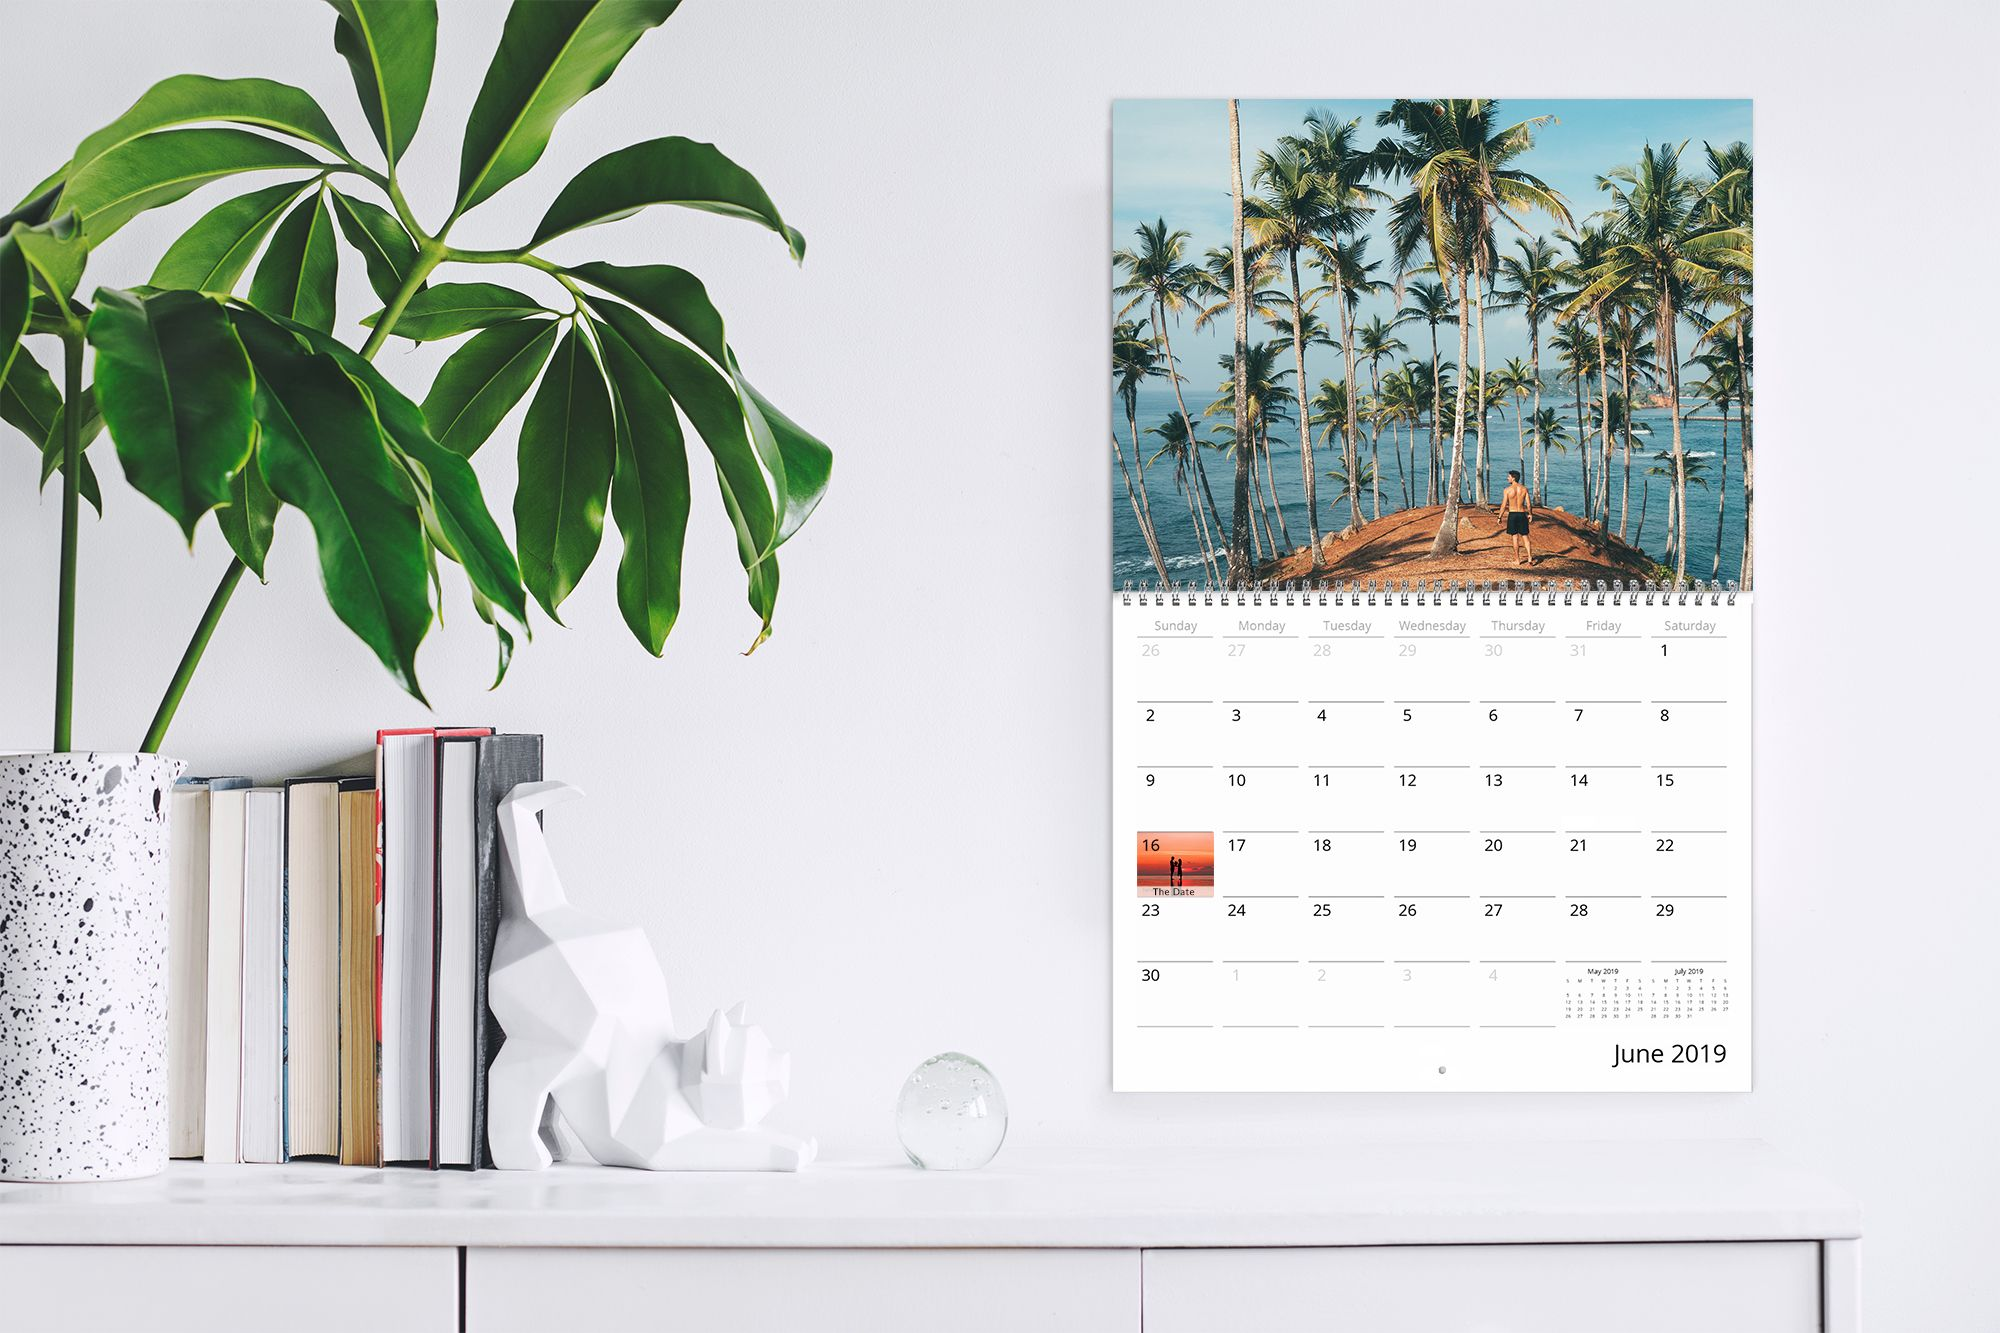 Calendars are a creative way to display your photos